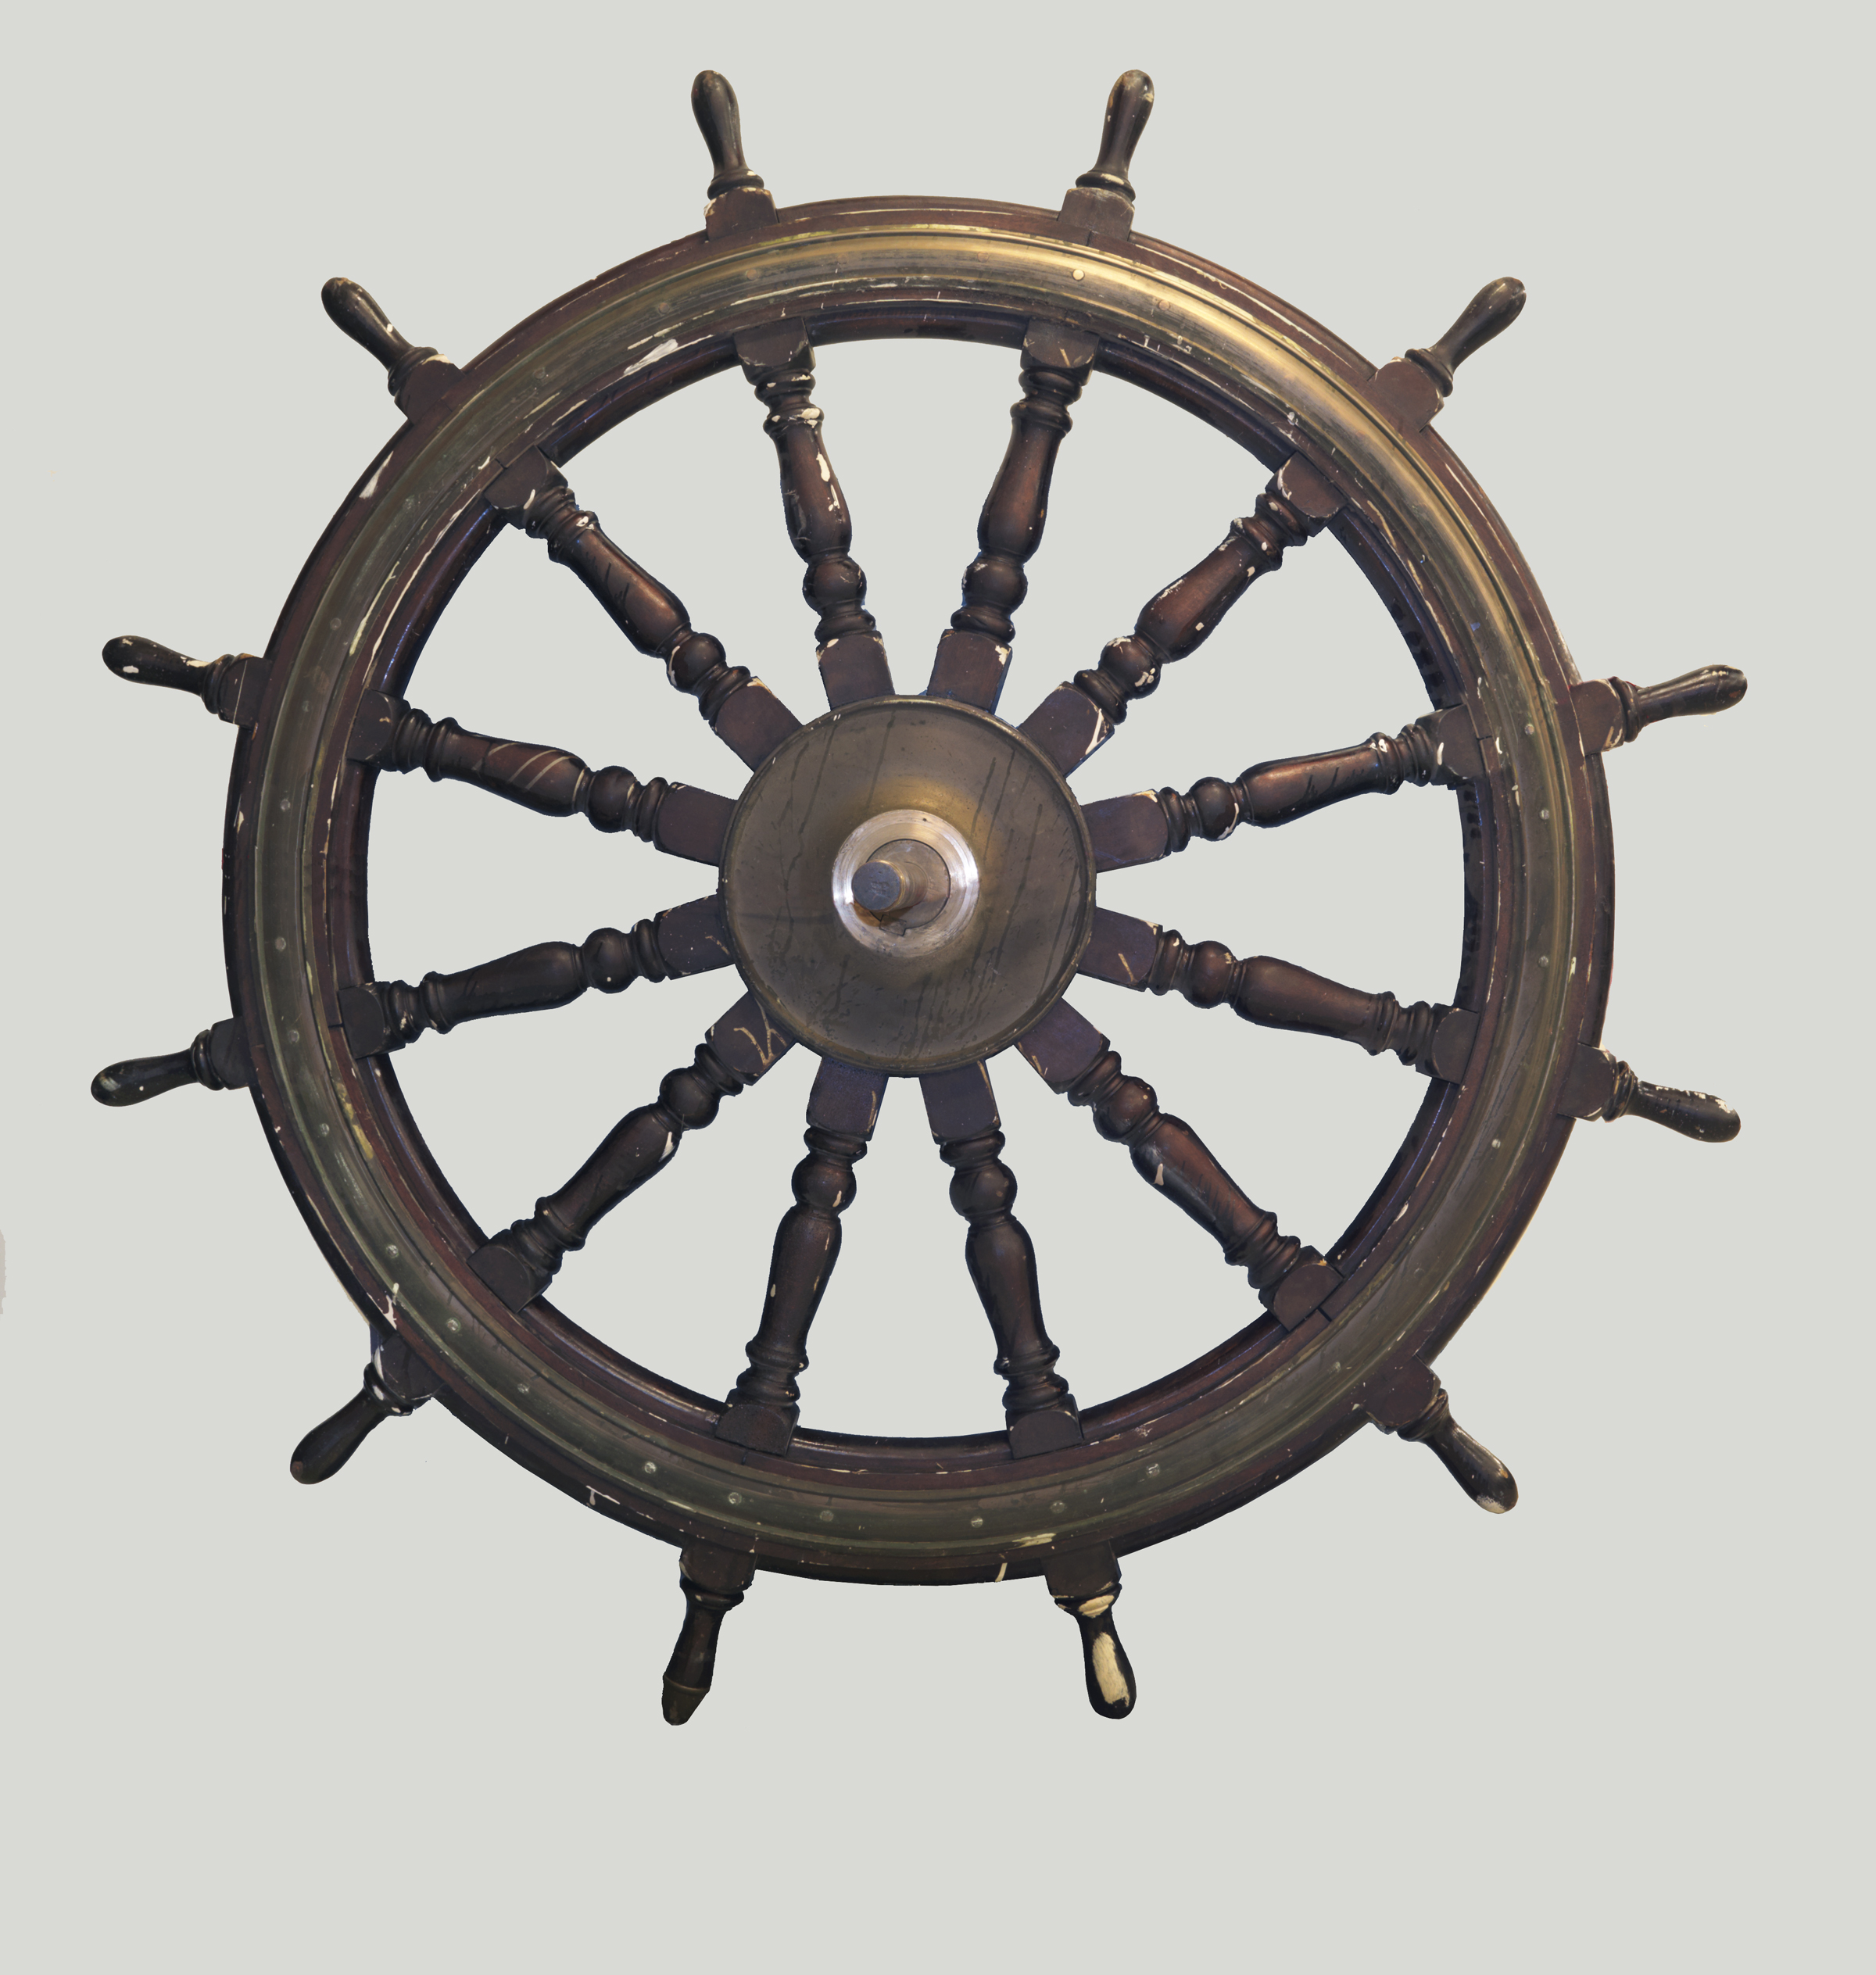 The ship's wheel from Her Majesty's Canadian Ship Niobe, one of Canada's first two warships.